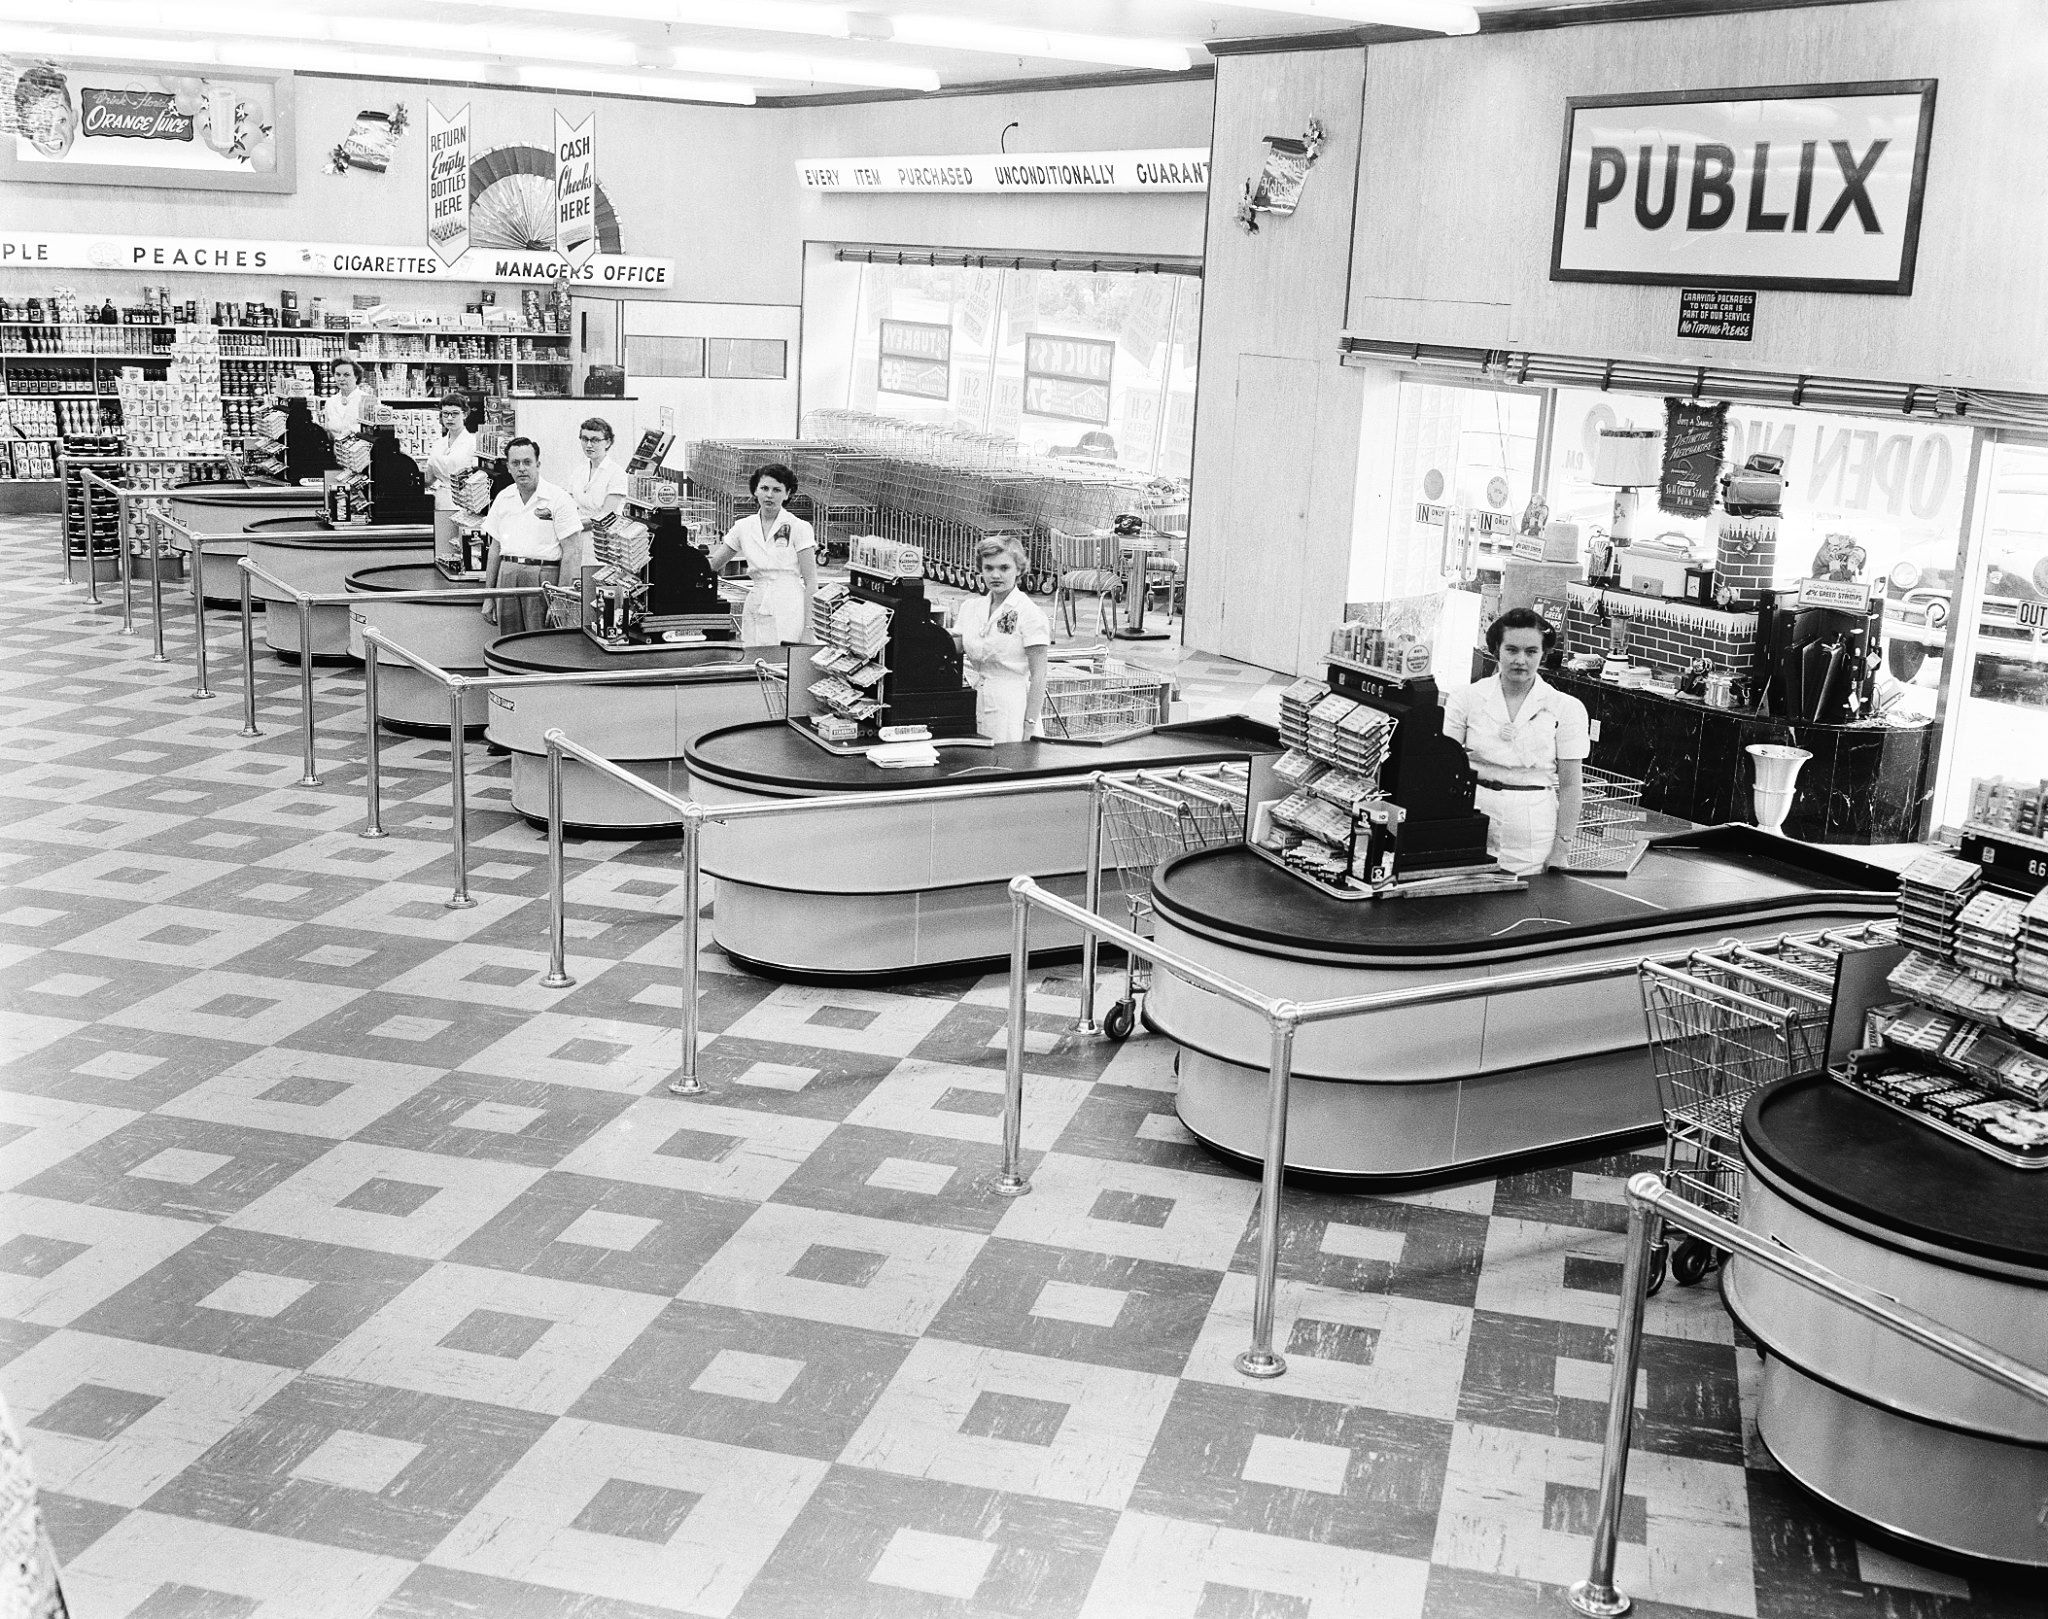 Pin by David Greenfield on Publix Vintage restaurant